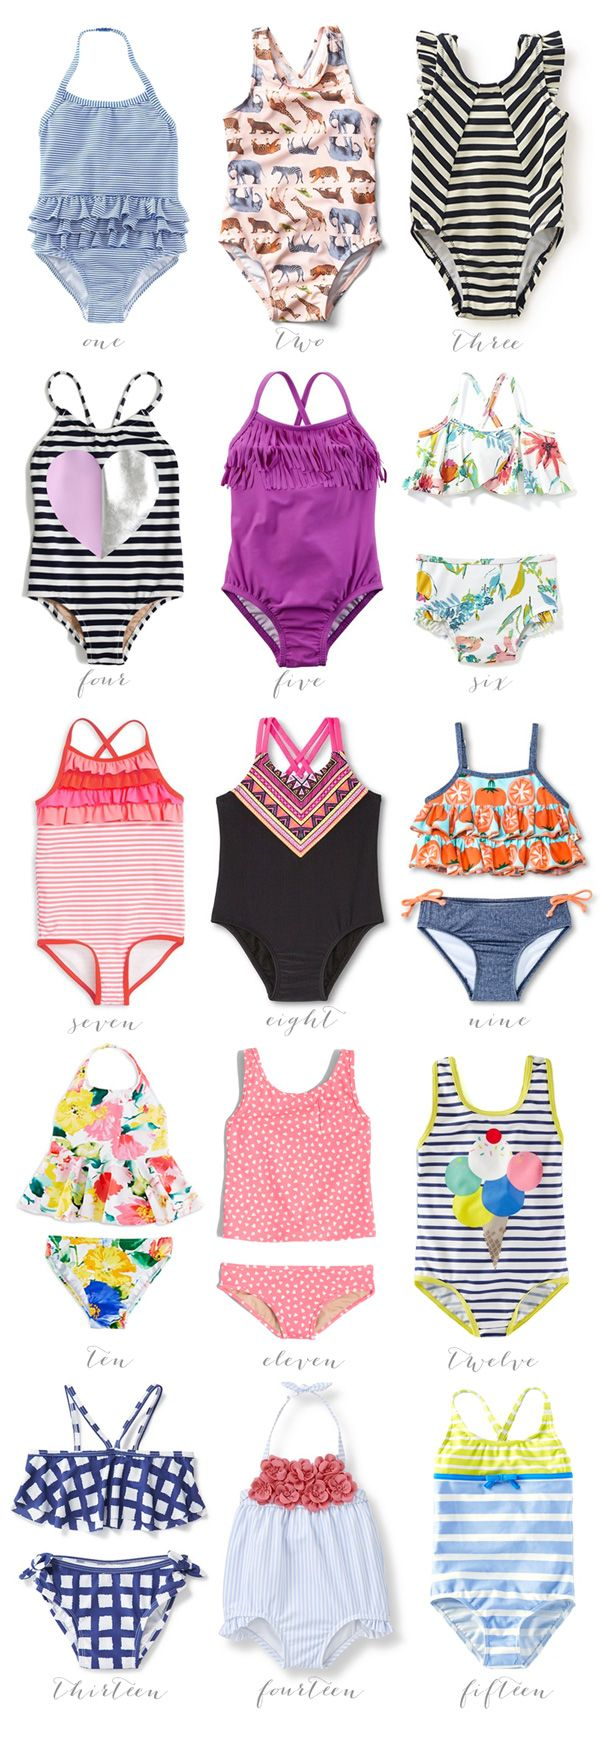 Affordable Swimsuits for Girls | Thrifty Littles Blog